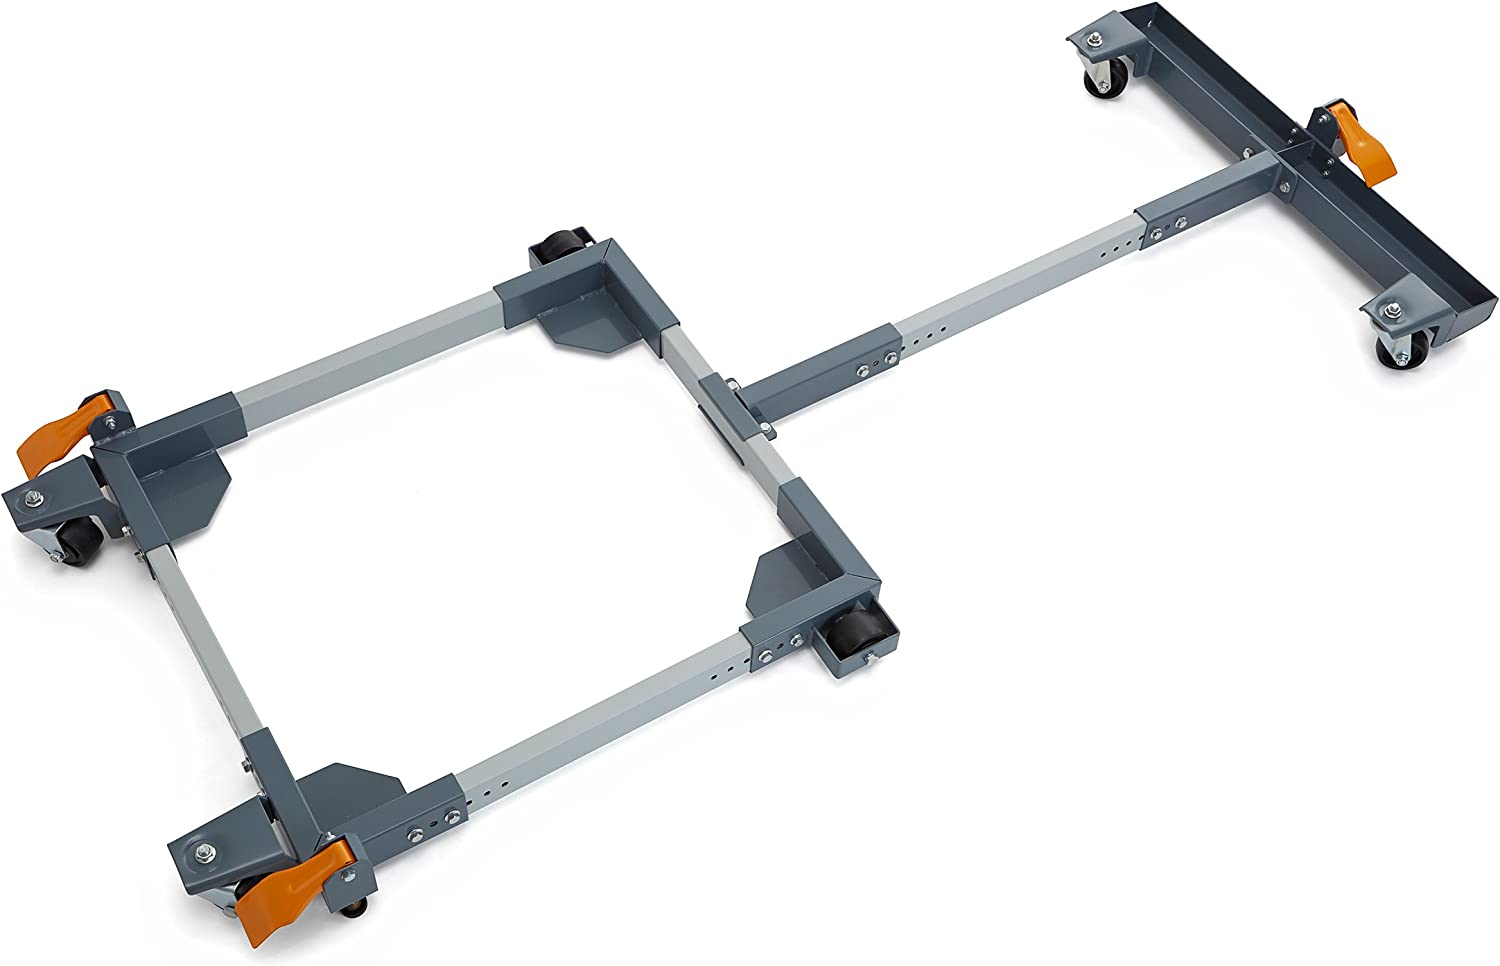 """Bora Portamate PM-3750 Mobile Base & T Extension Combo For Cabinet Table Saws Withup To 50"""" Extension Tables"""